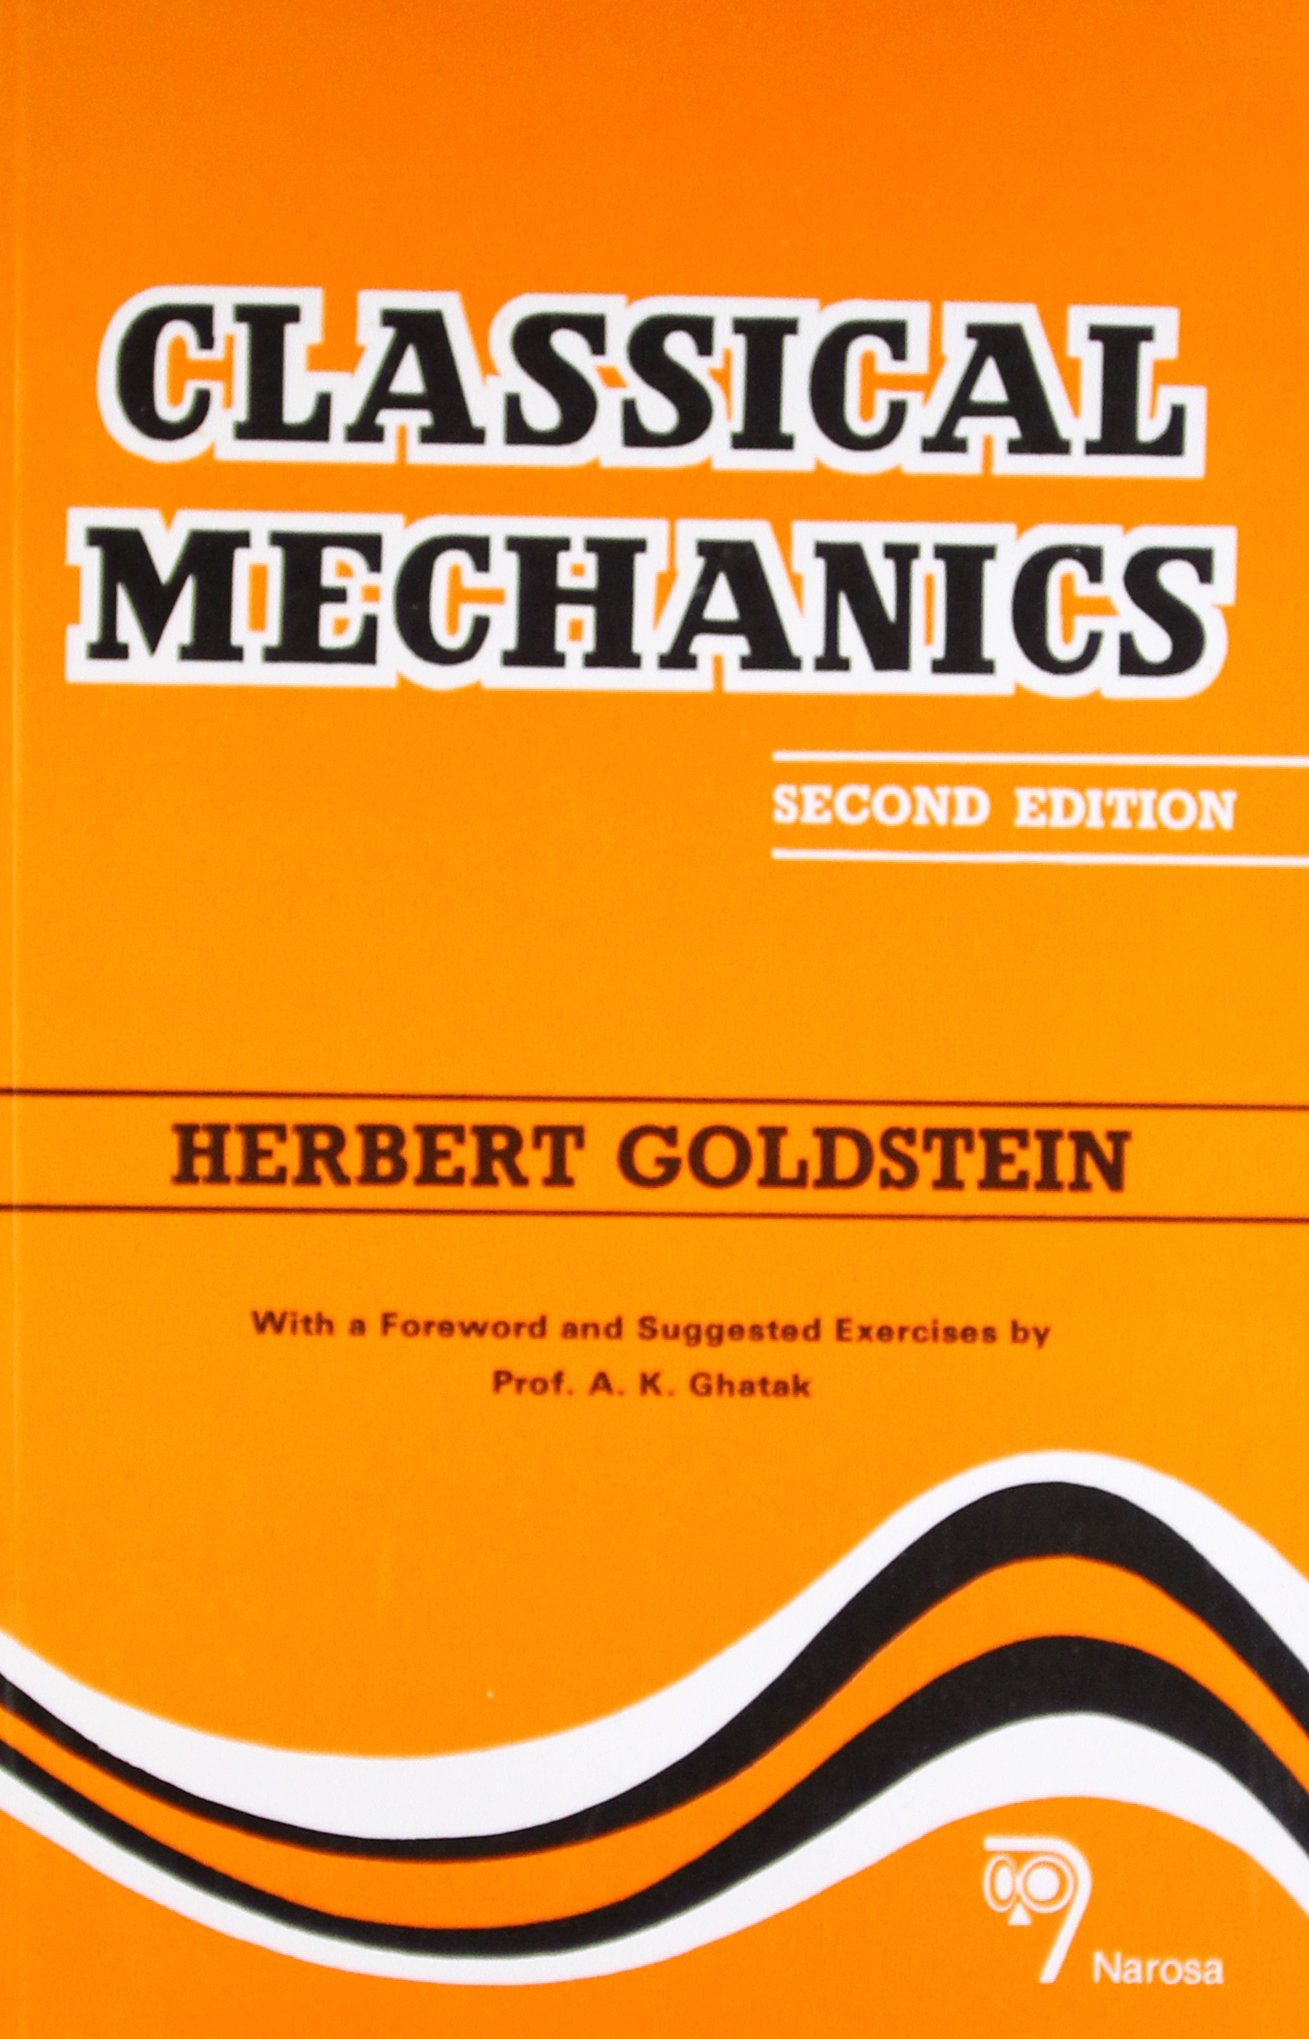 Classical Mechanics [Paperback] [Jan 01, 2001] H  Goldstein: H